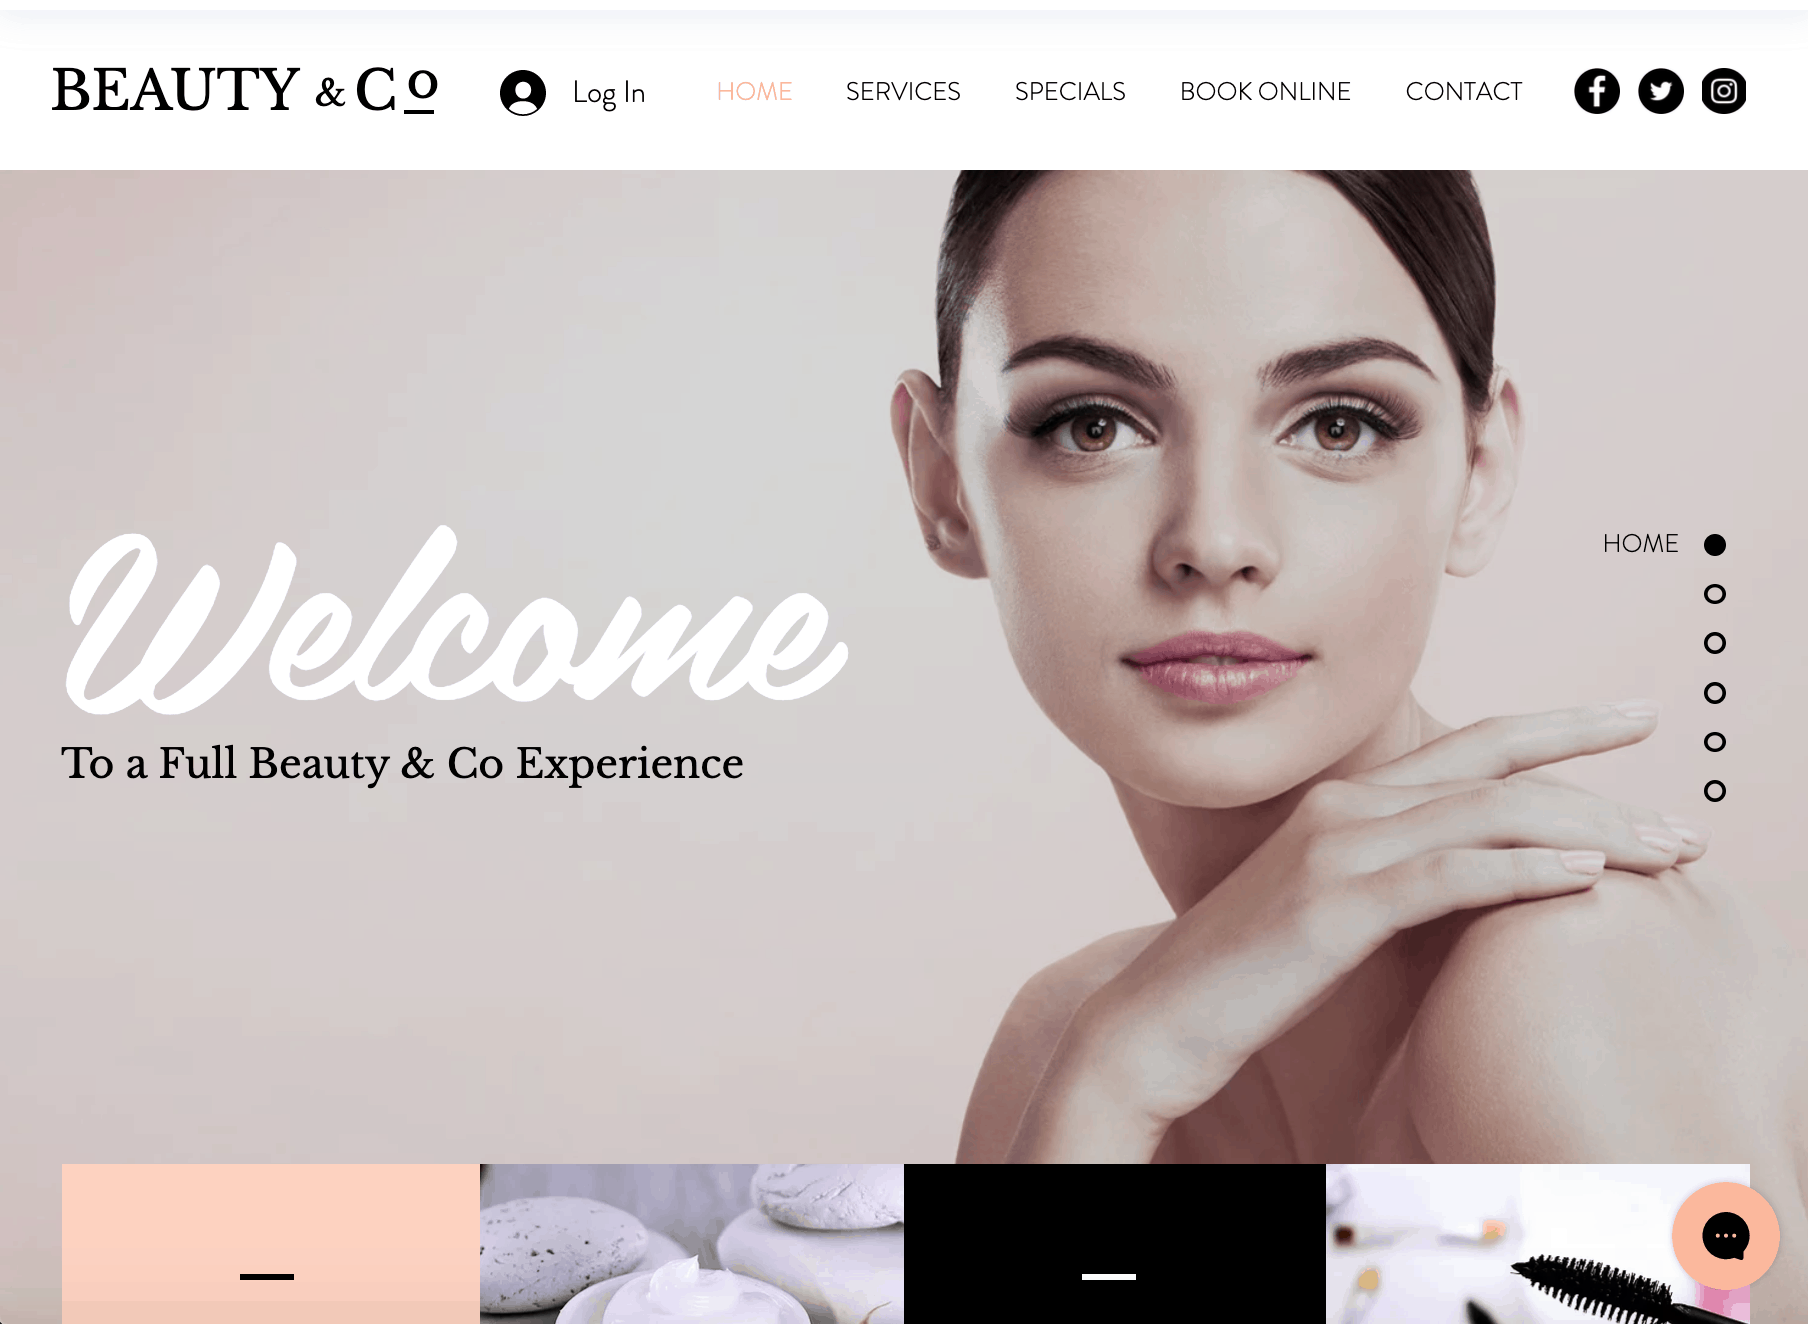 Hair salon website design ideas